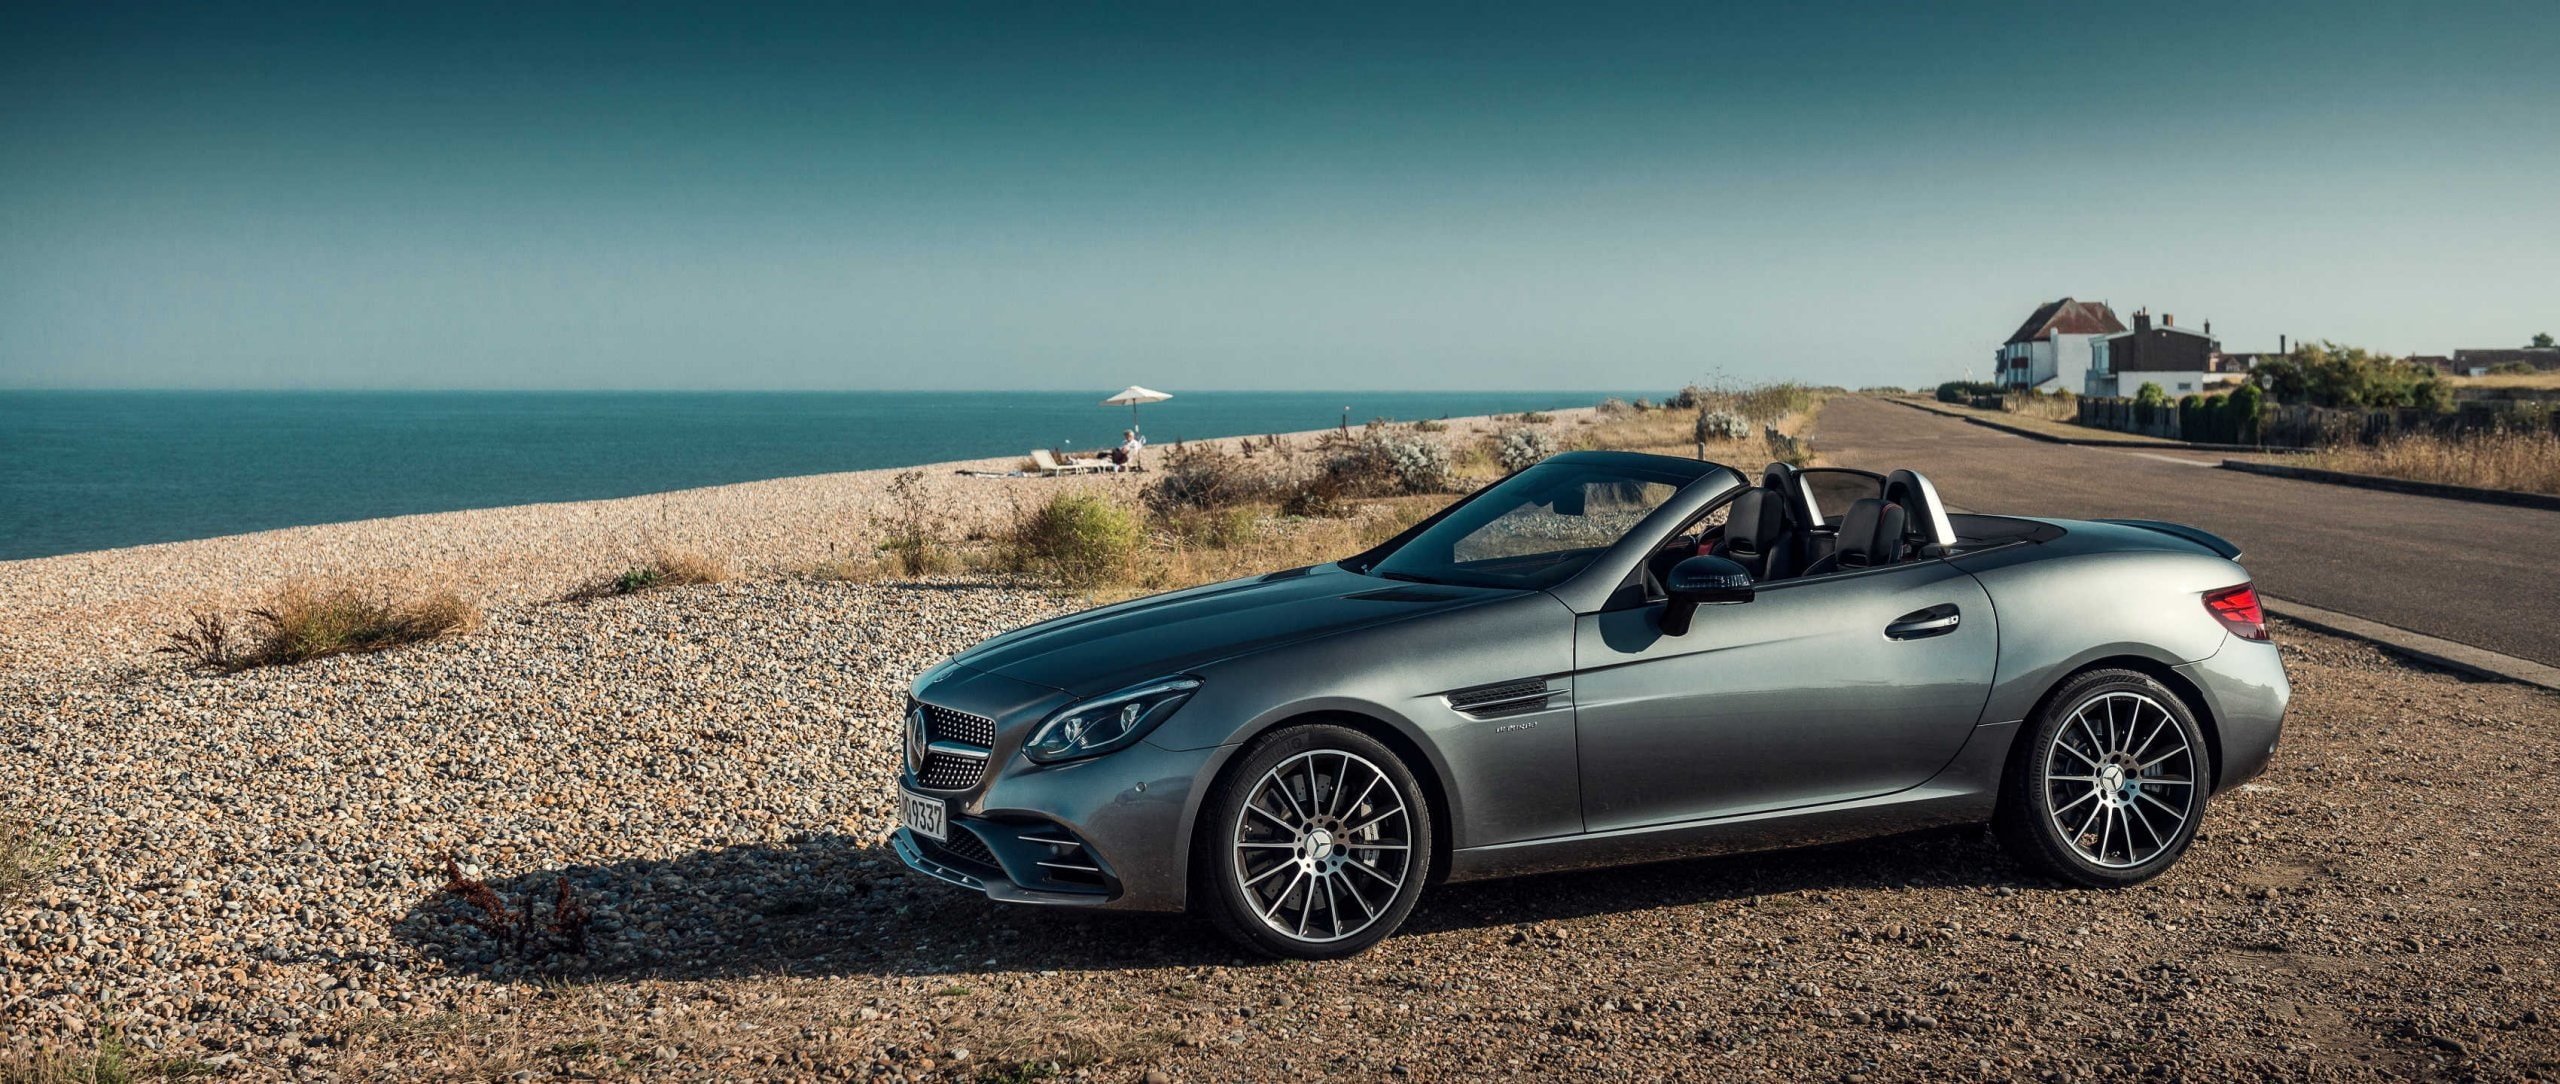 Mercedes-AMG SLC 43 (R 172): side view at the beach.